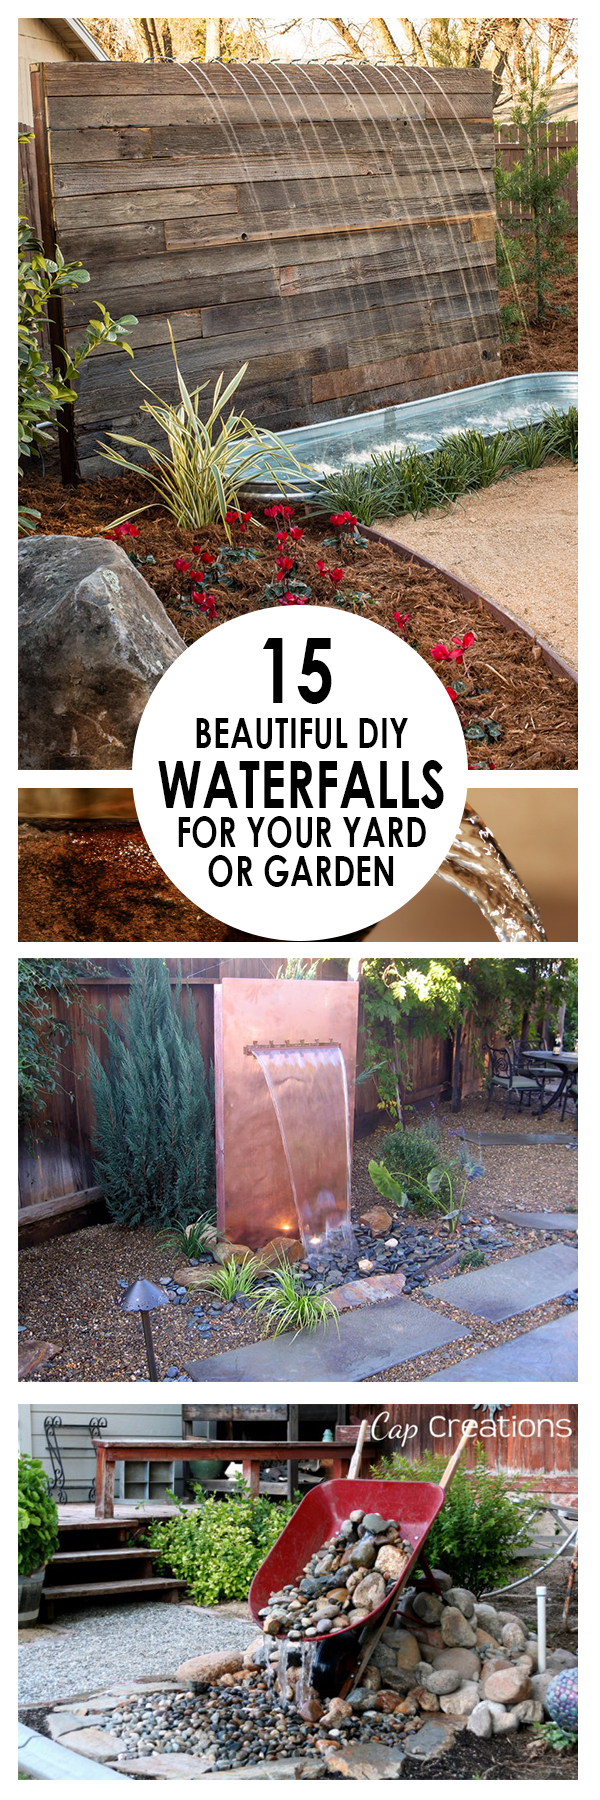 DIY Waterfalls, DIY Waterfall Projects, DIY Waterfall, DIY Water Feature, Garden Ideas, Outdoor DIY